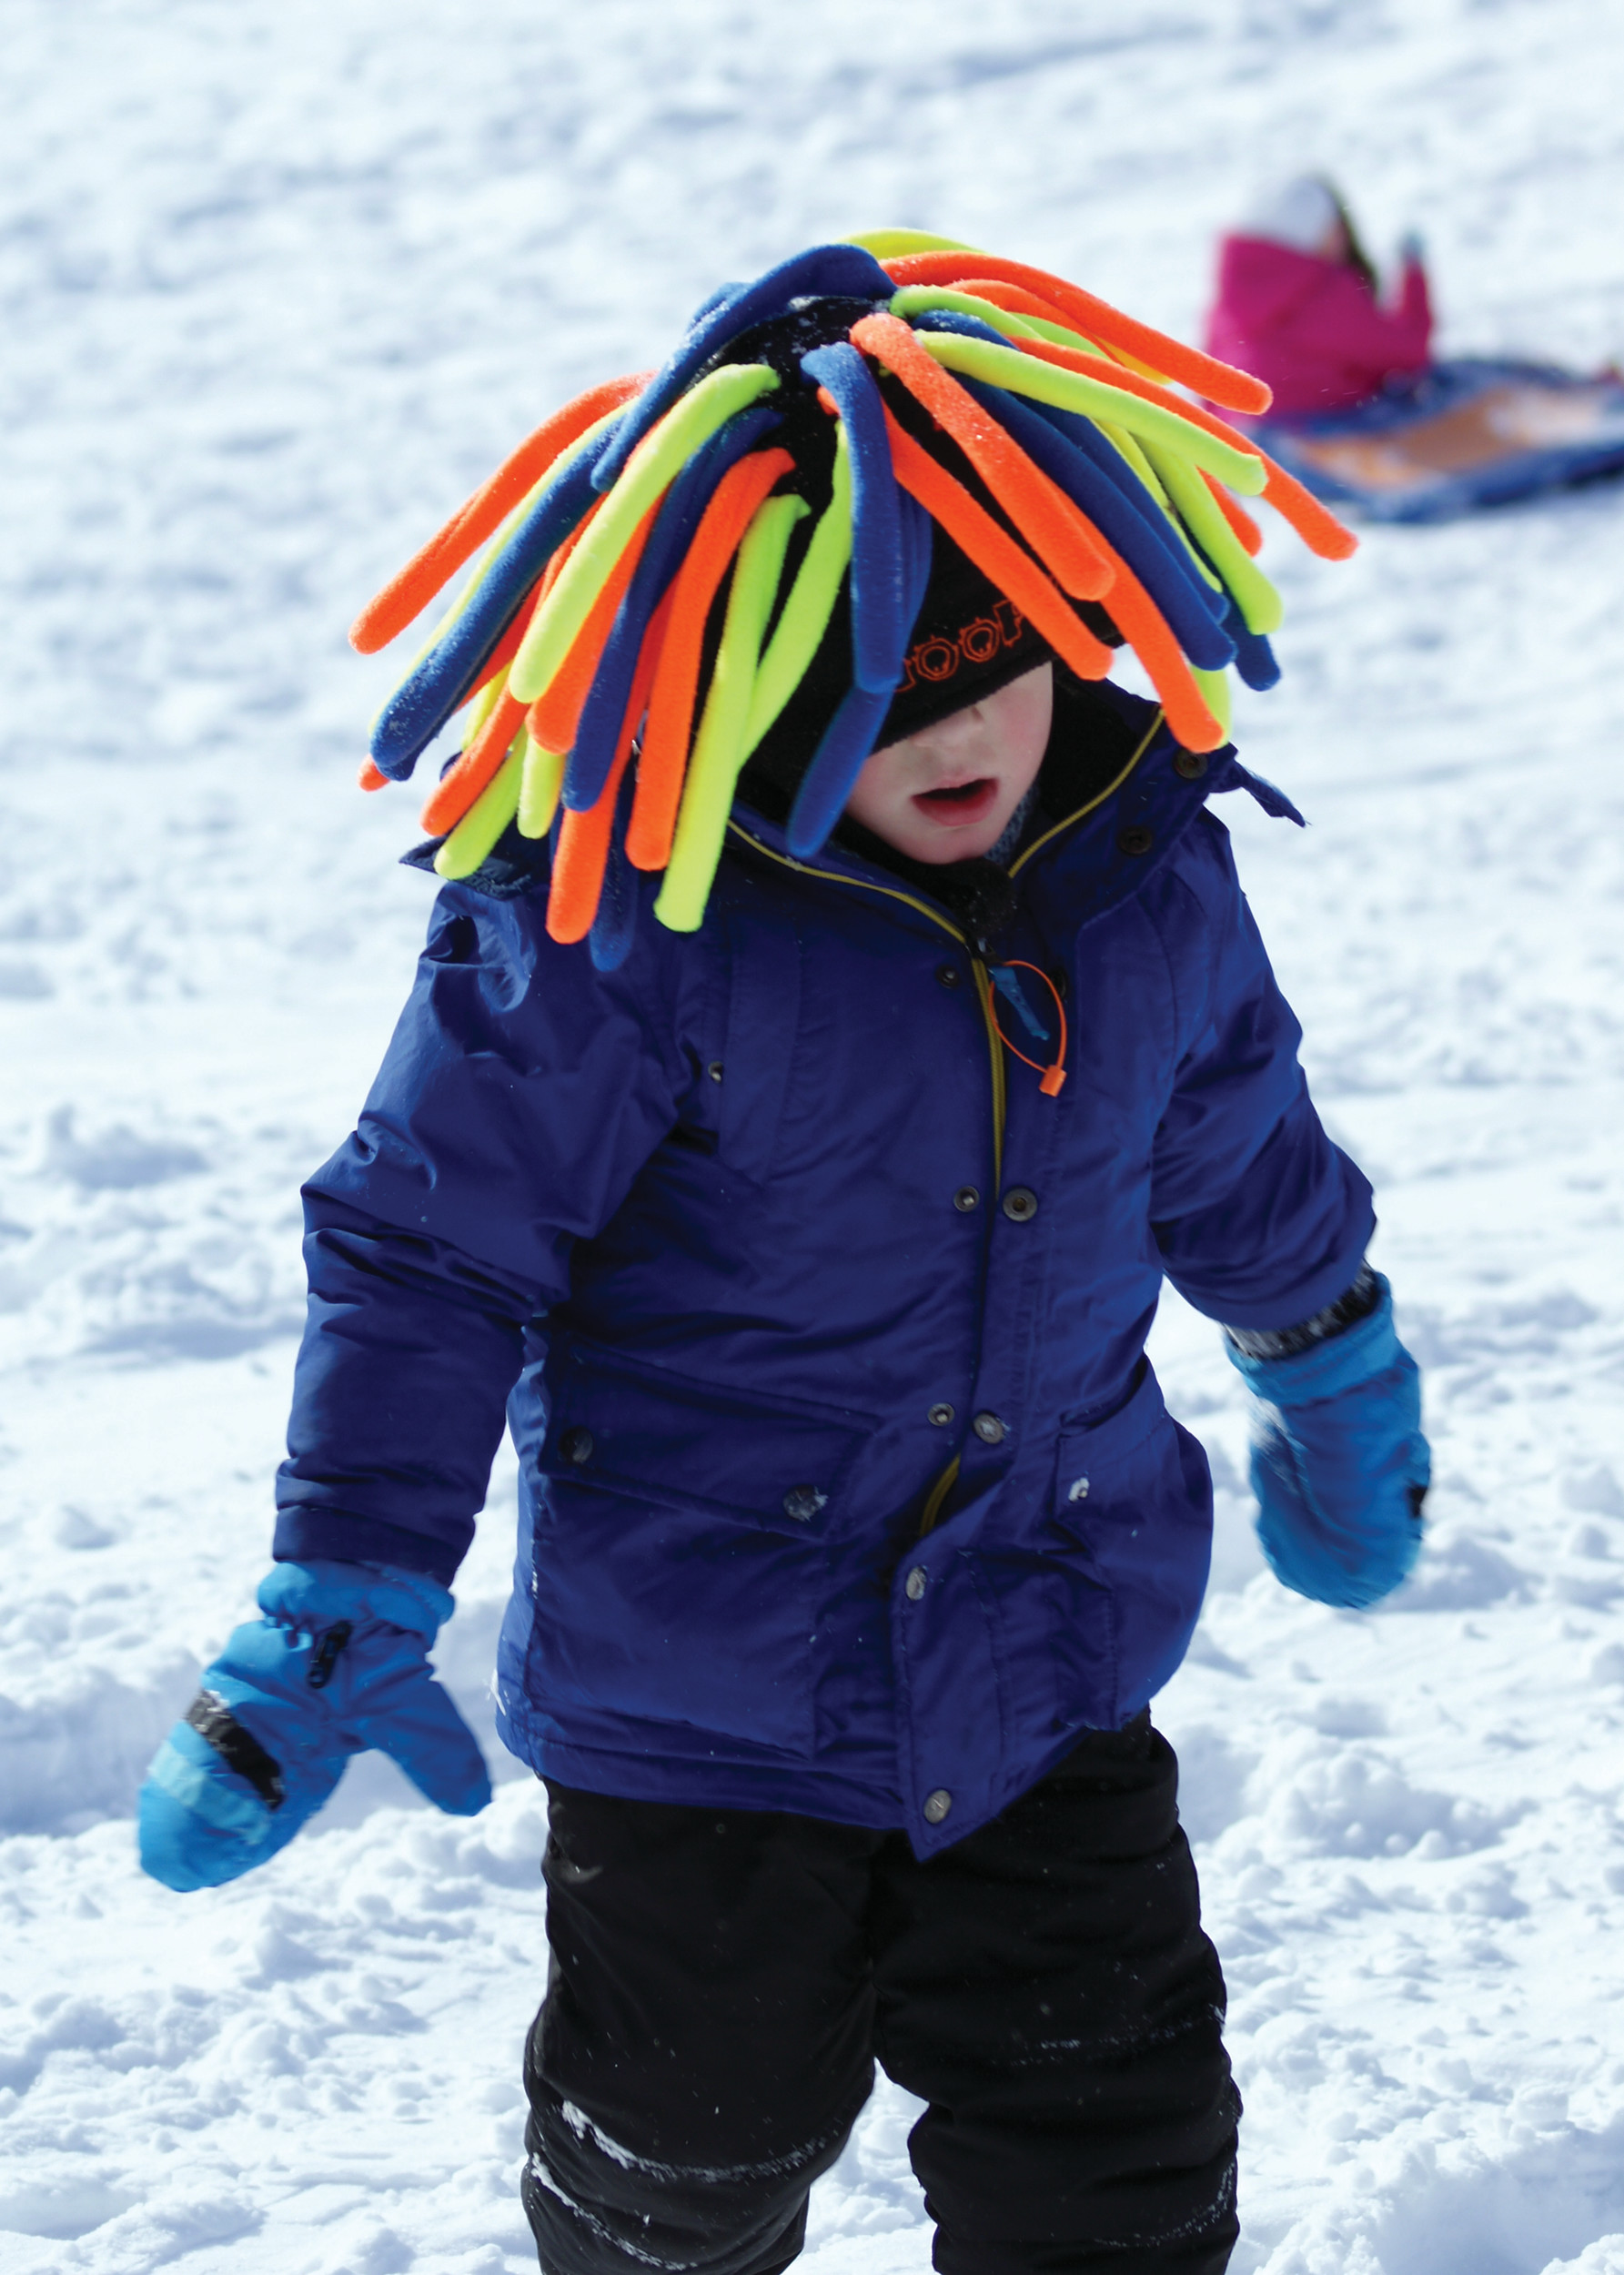 FUNKY HAT: Young Johnny Durante, age 4, is pictured in his colorful hat as he climbed up the hill at Cranston High School West.